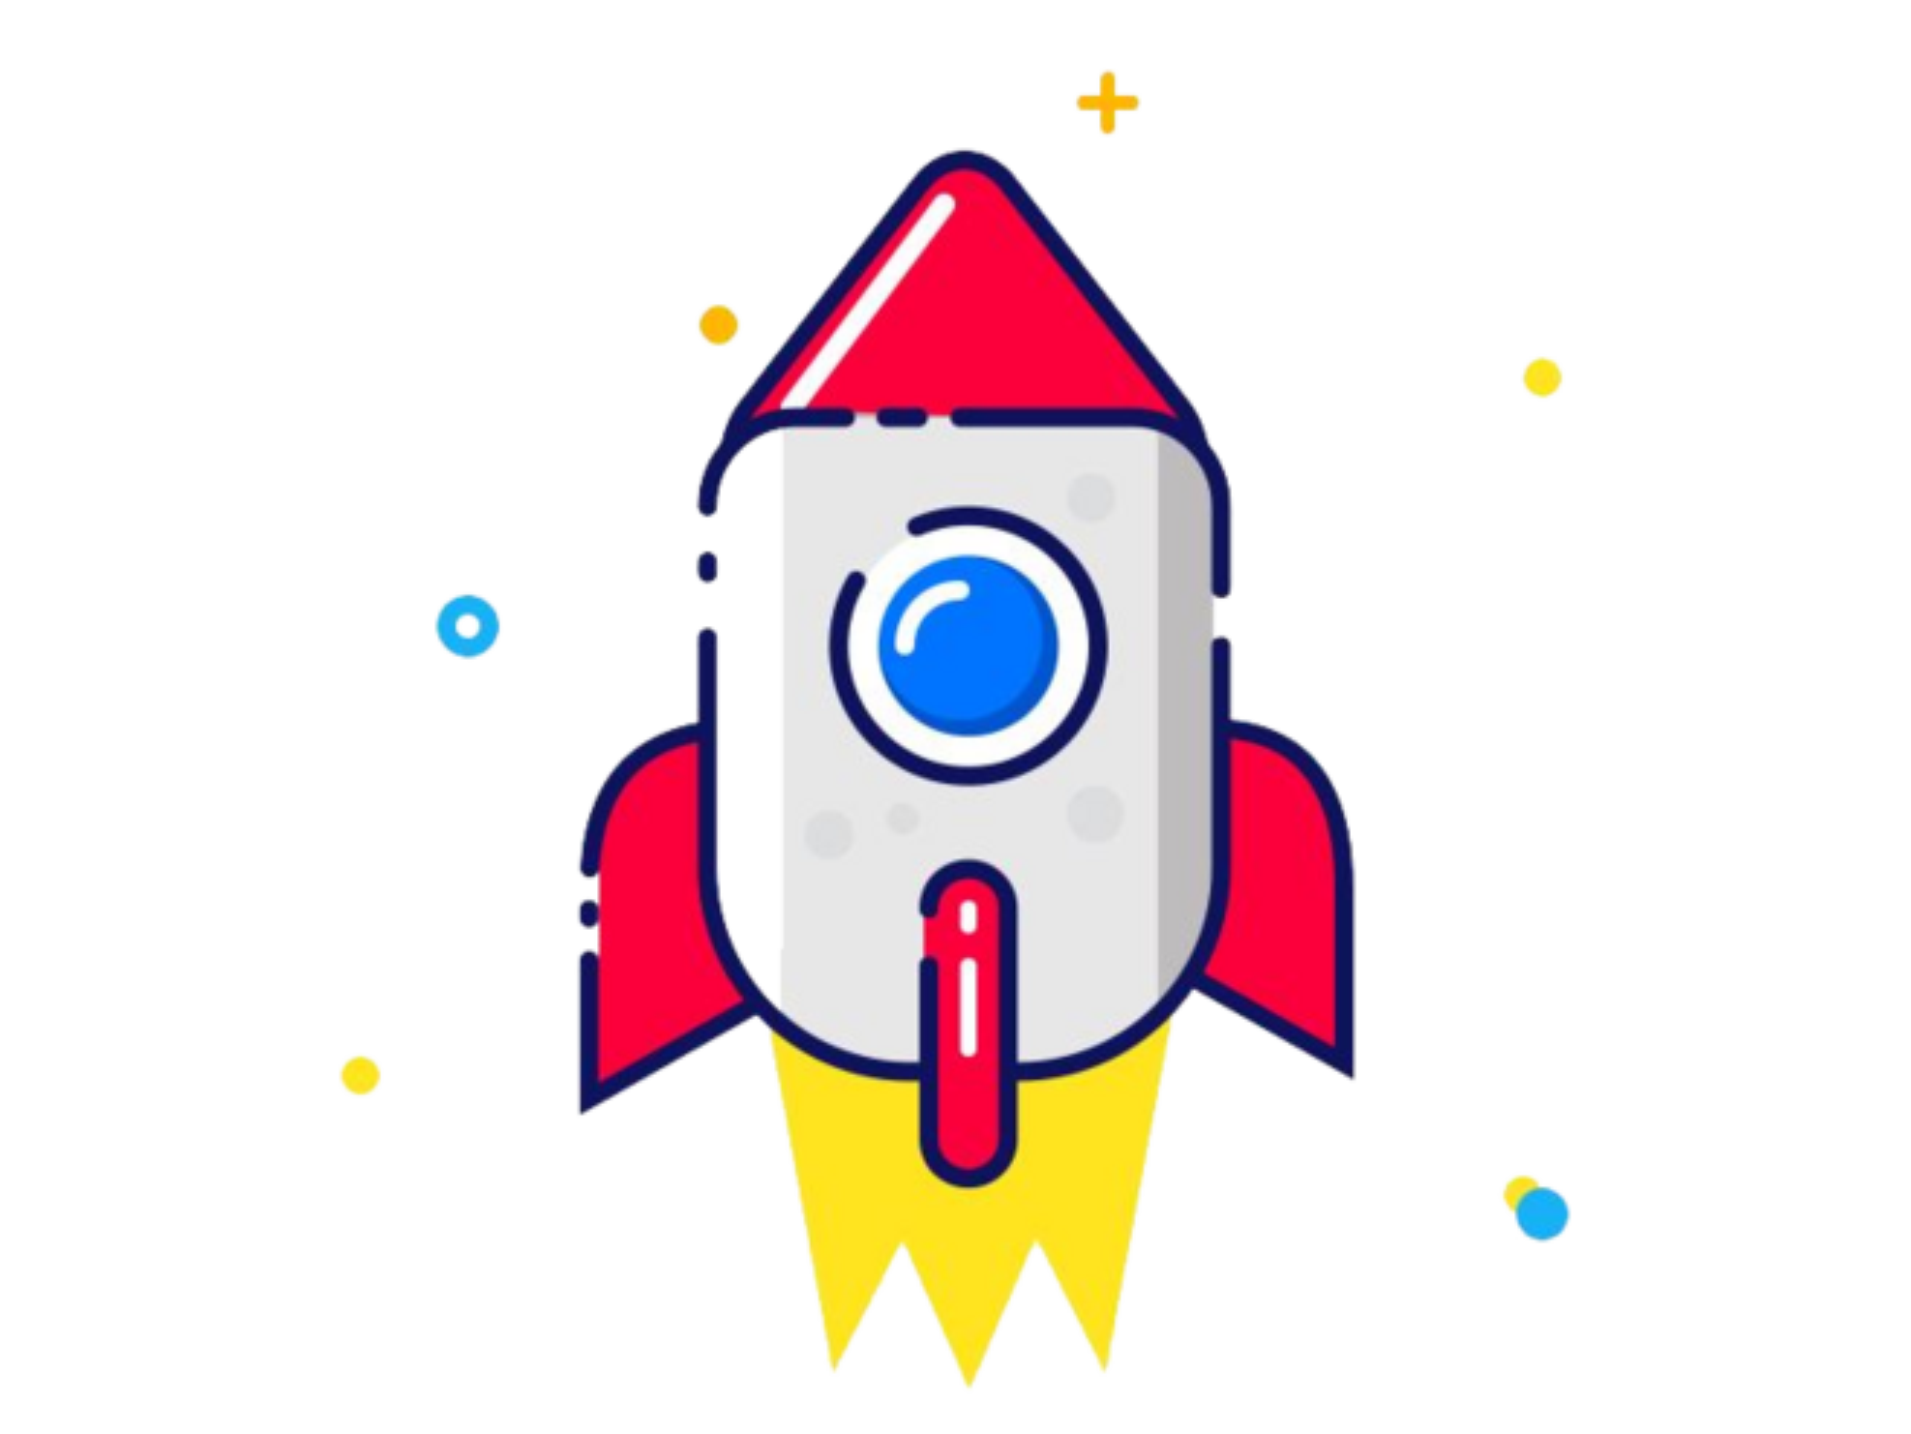 Spaceship clipart starship. Graphic design spacecraft rocket